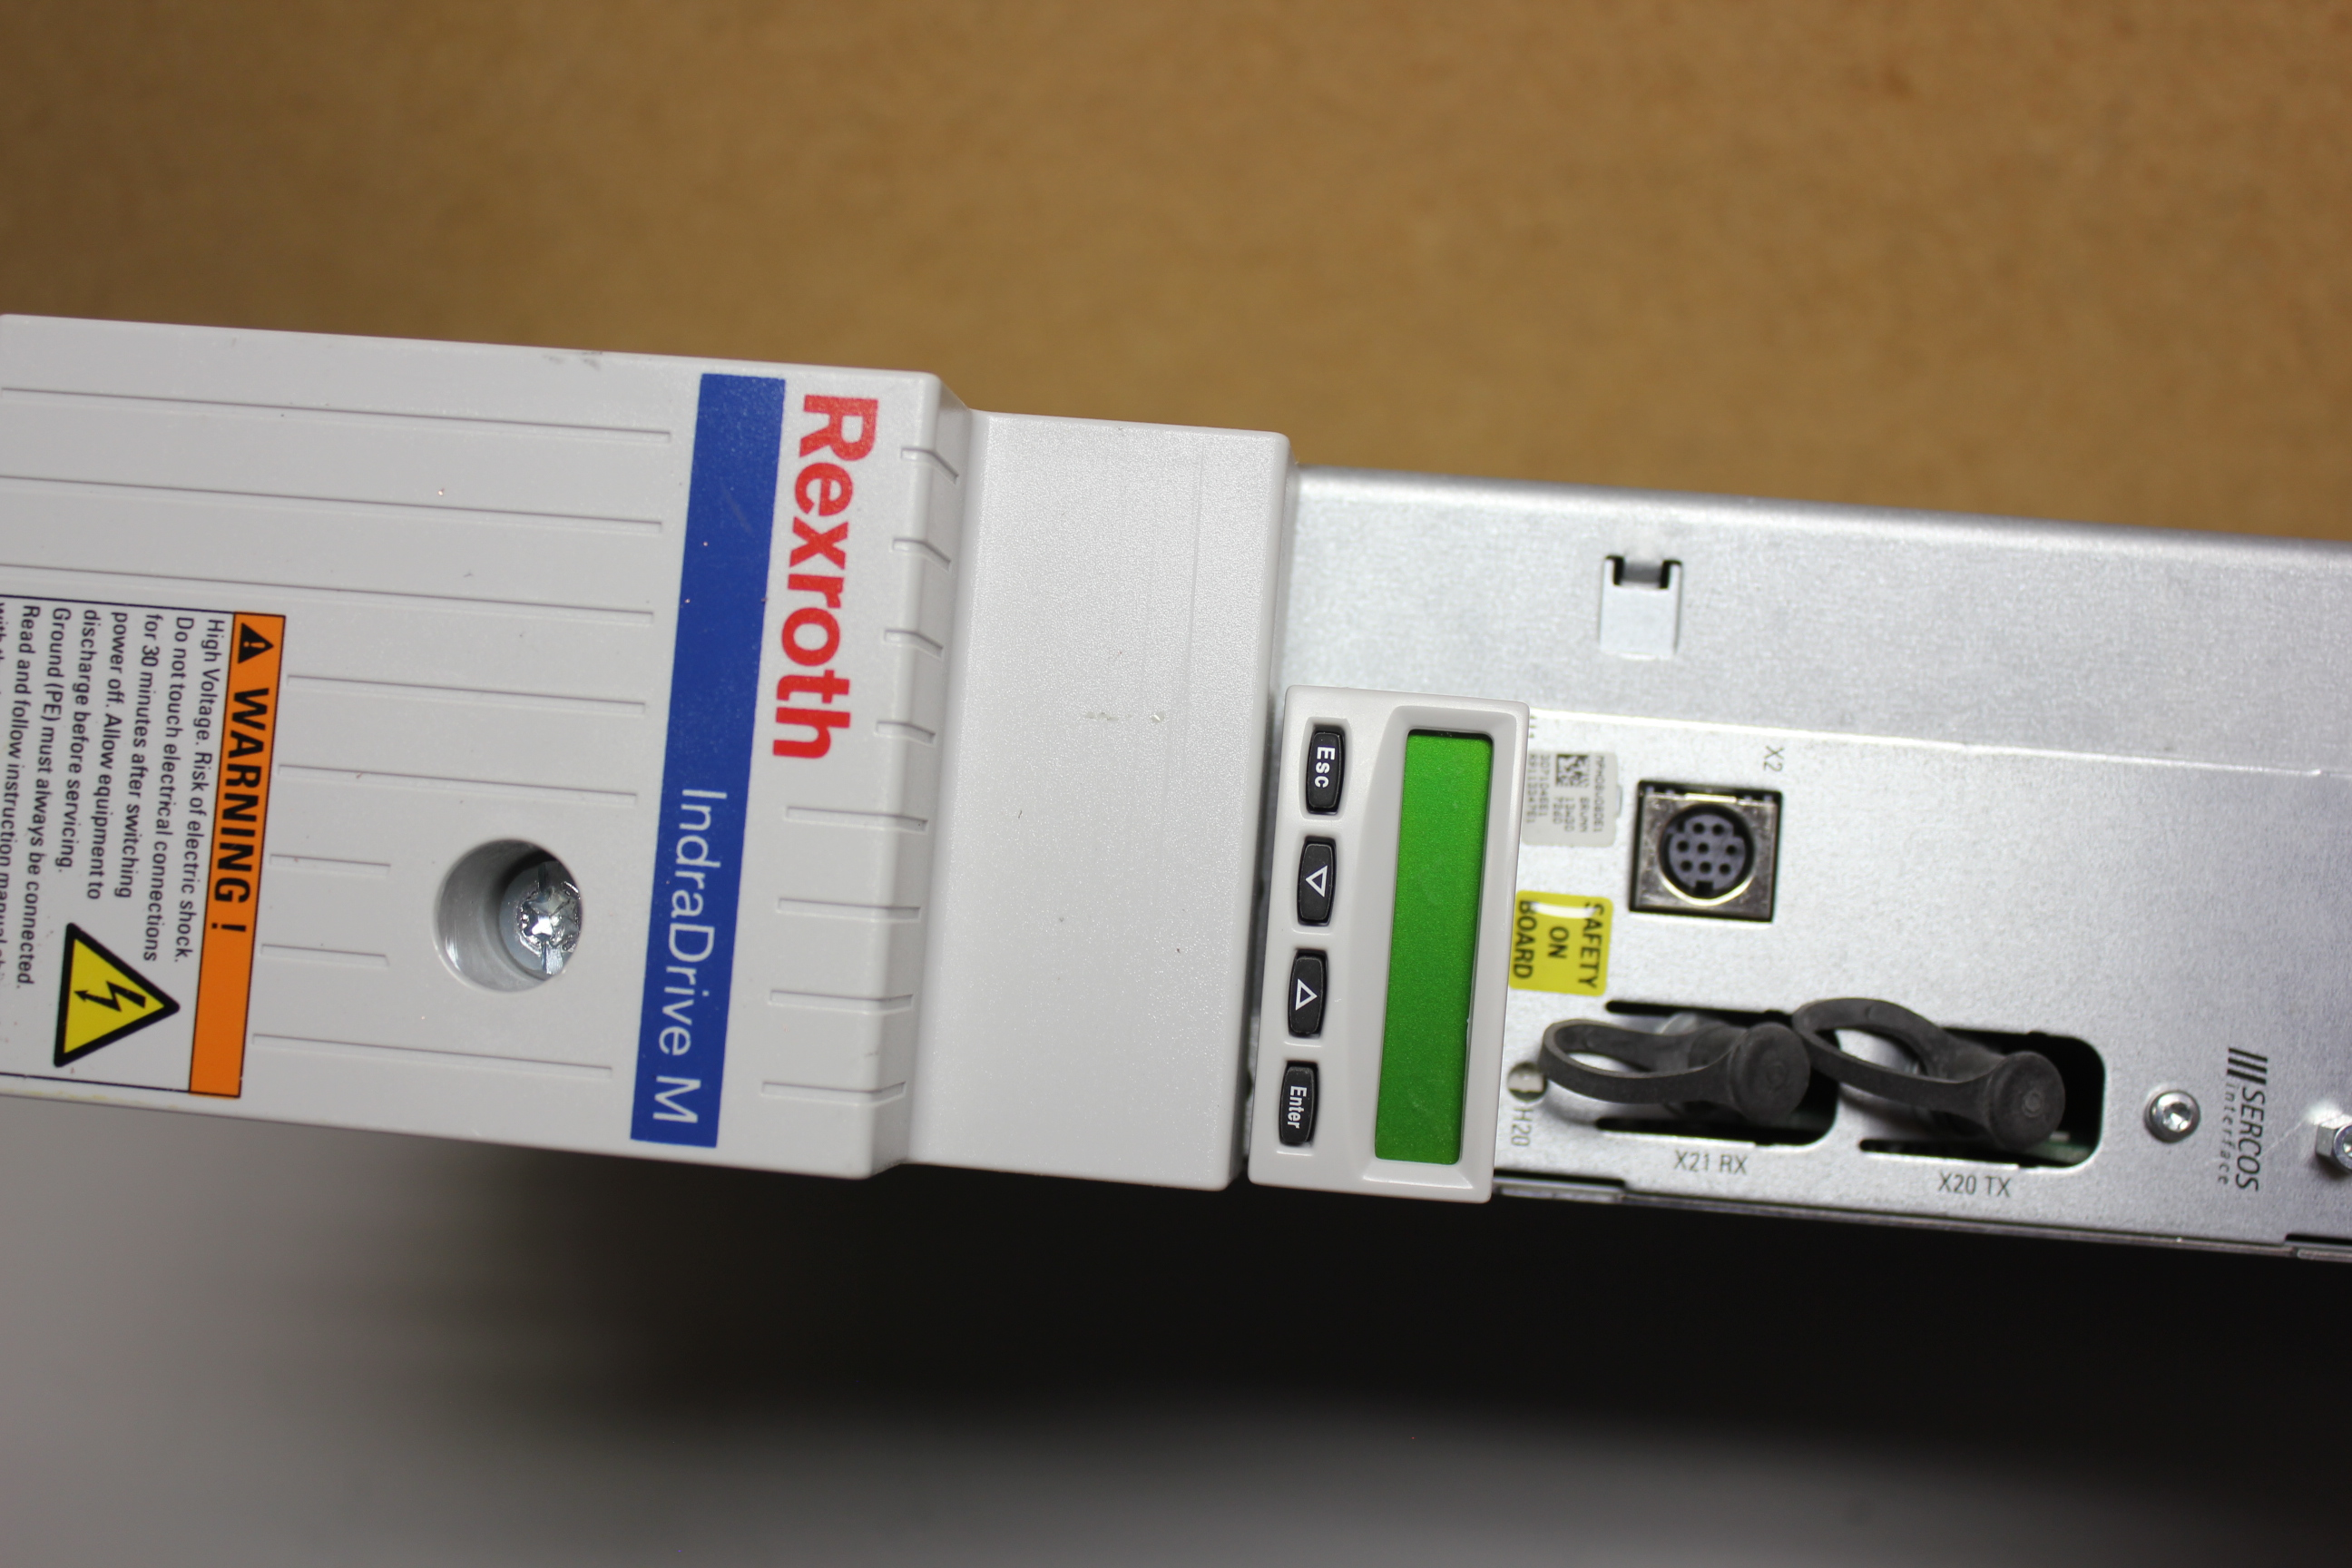 REXROTH INDRADRIVE M SINGLE AXIS INVERTER WITH SERCOS MODULE - Image 2 of 7